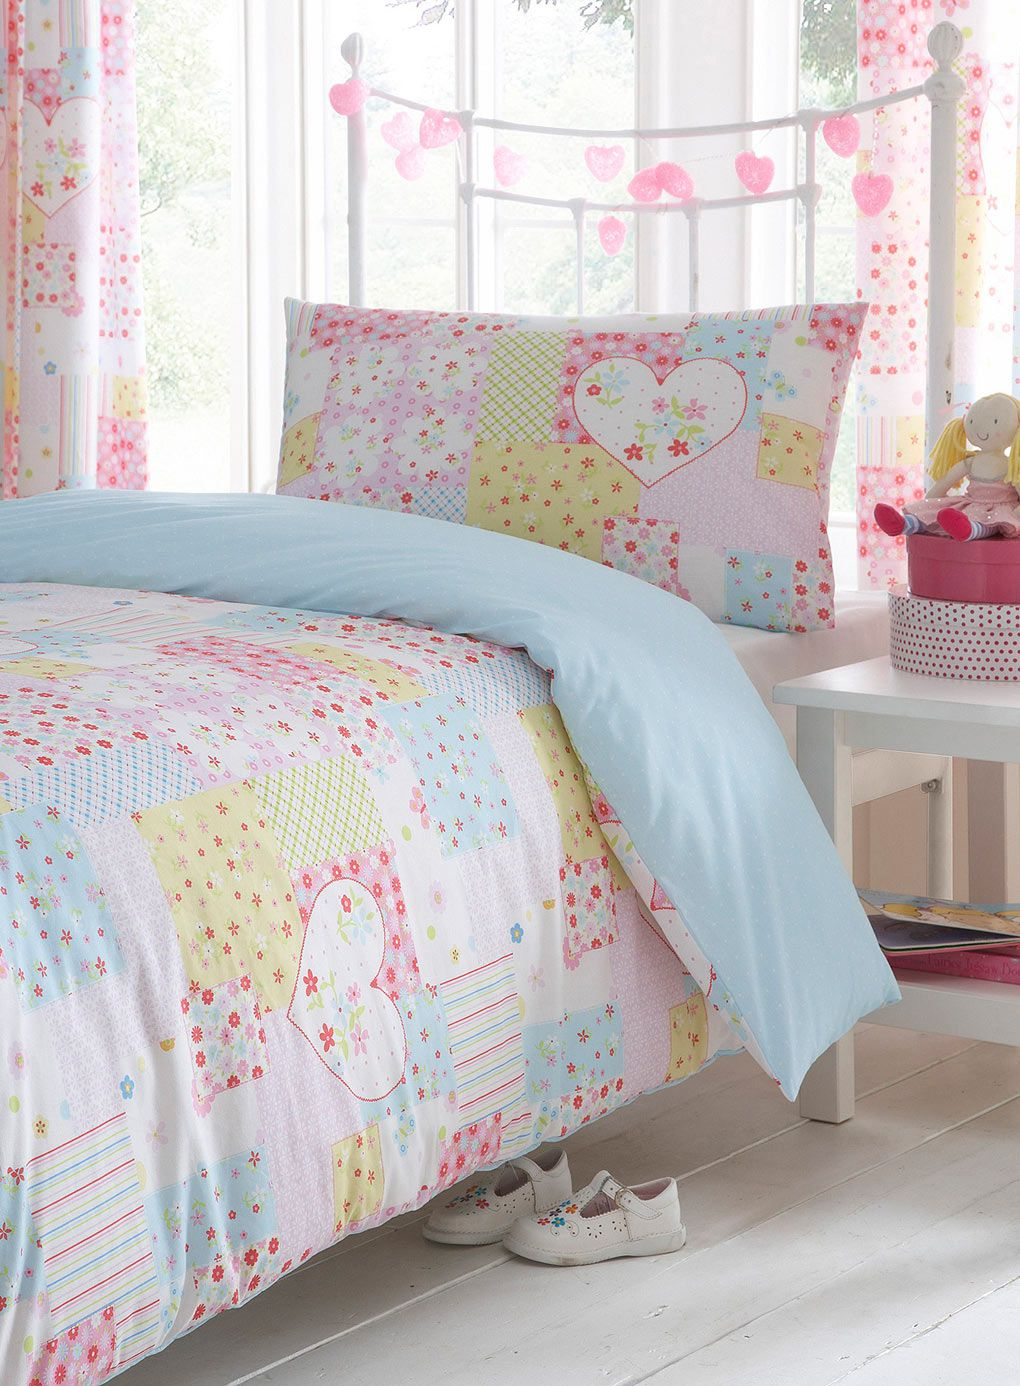 Roxy bedding samantha - Colorful Girls Bedroom Decoration With Soft Pastels Colors Comforter And Heart Patchwork Single Bedding Set